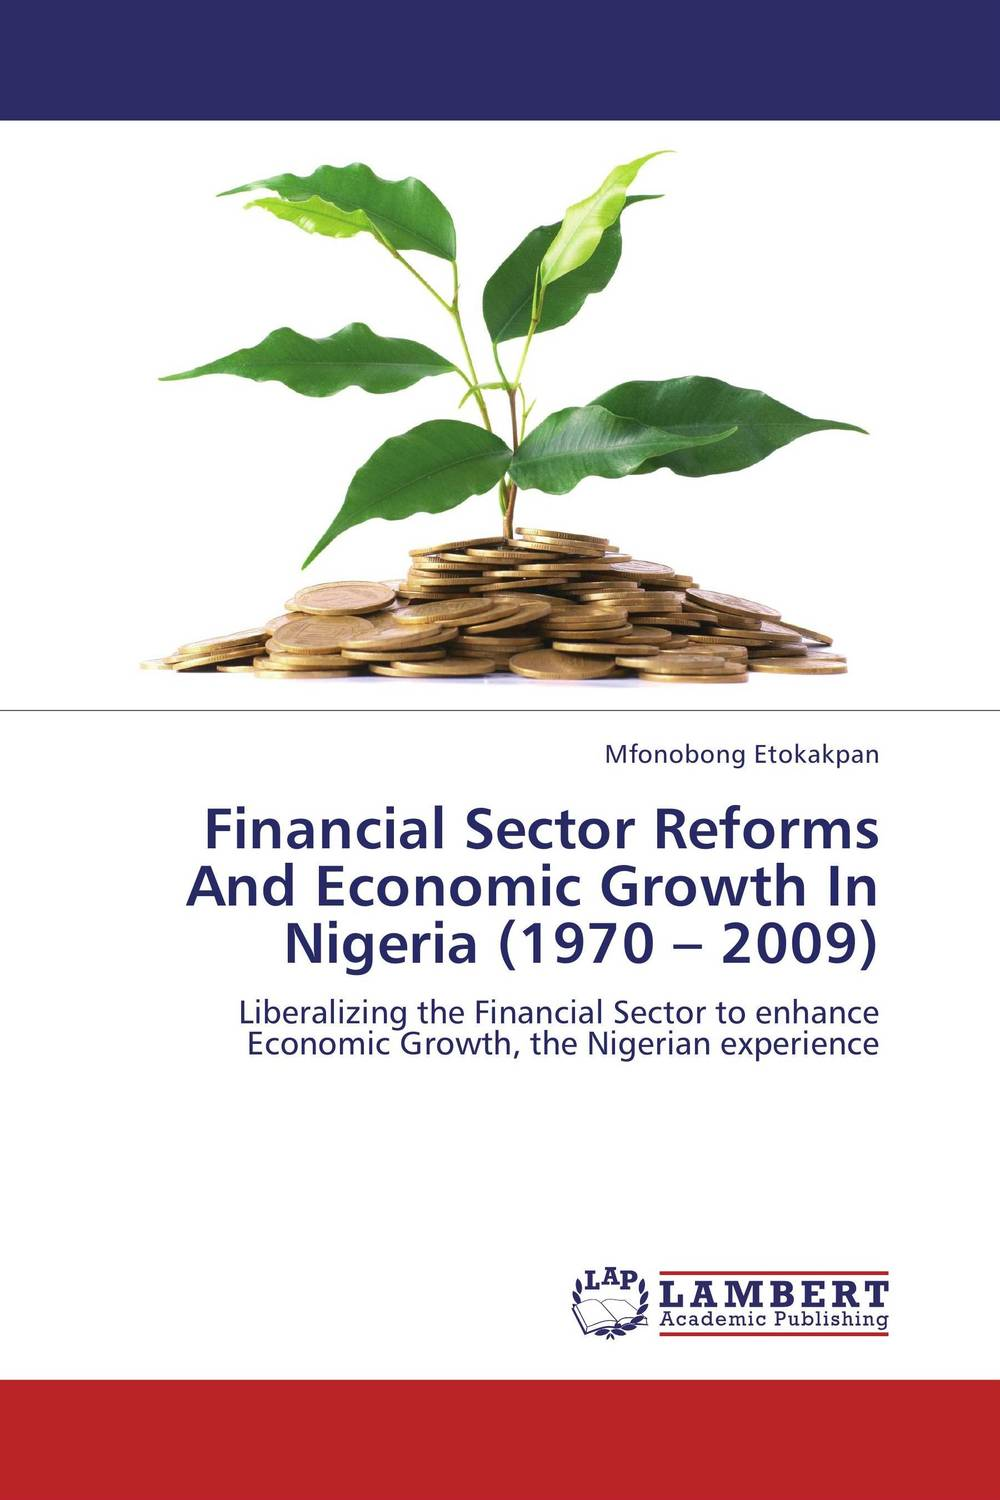 Financial Sector Reforms And Economic Growth In Nigeria (1970 – 2009) economic reforms and growth of insurance sector in india